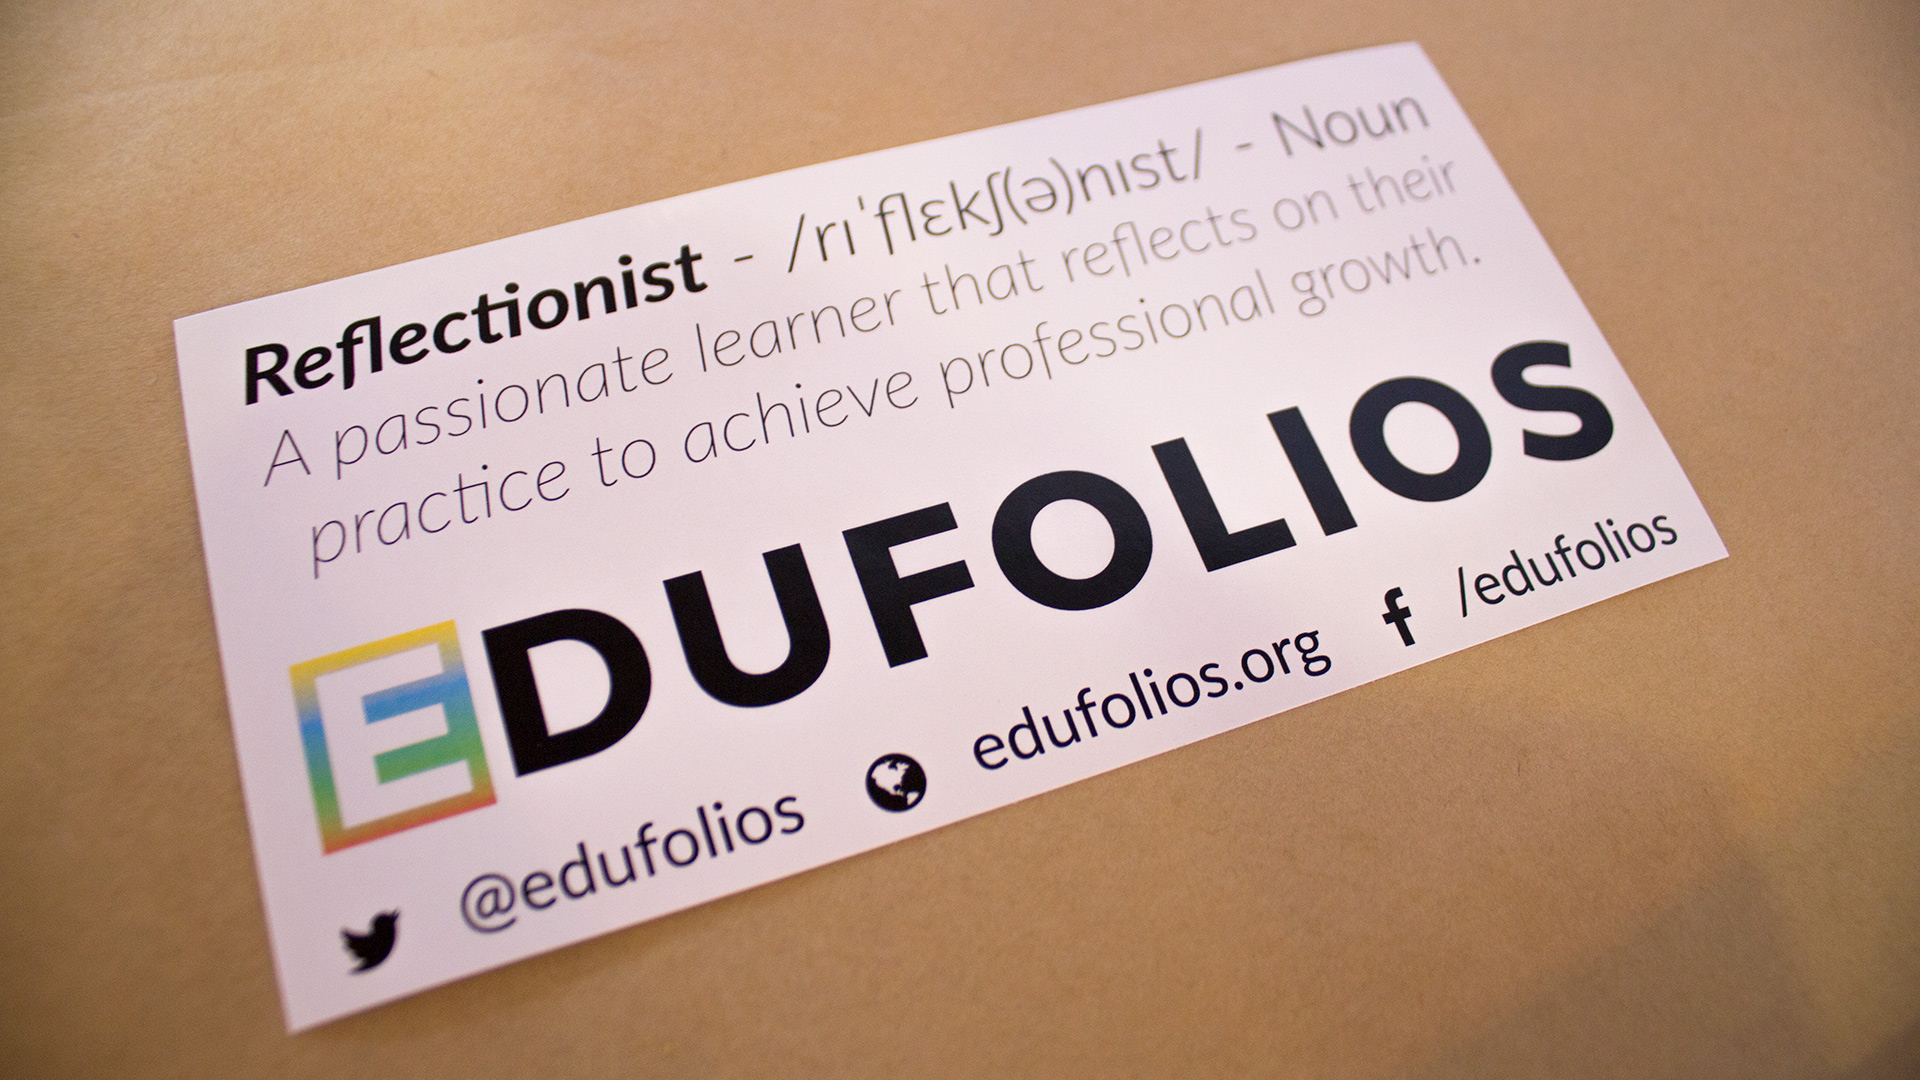 Reflction is way better than perfection - edufolios